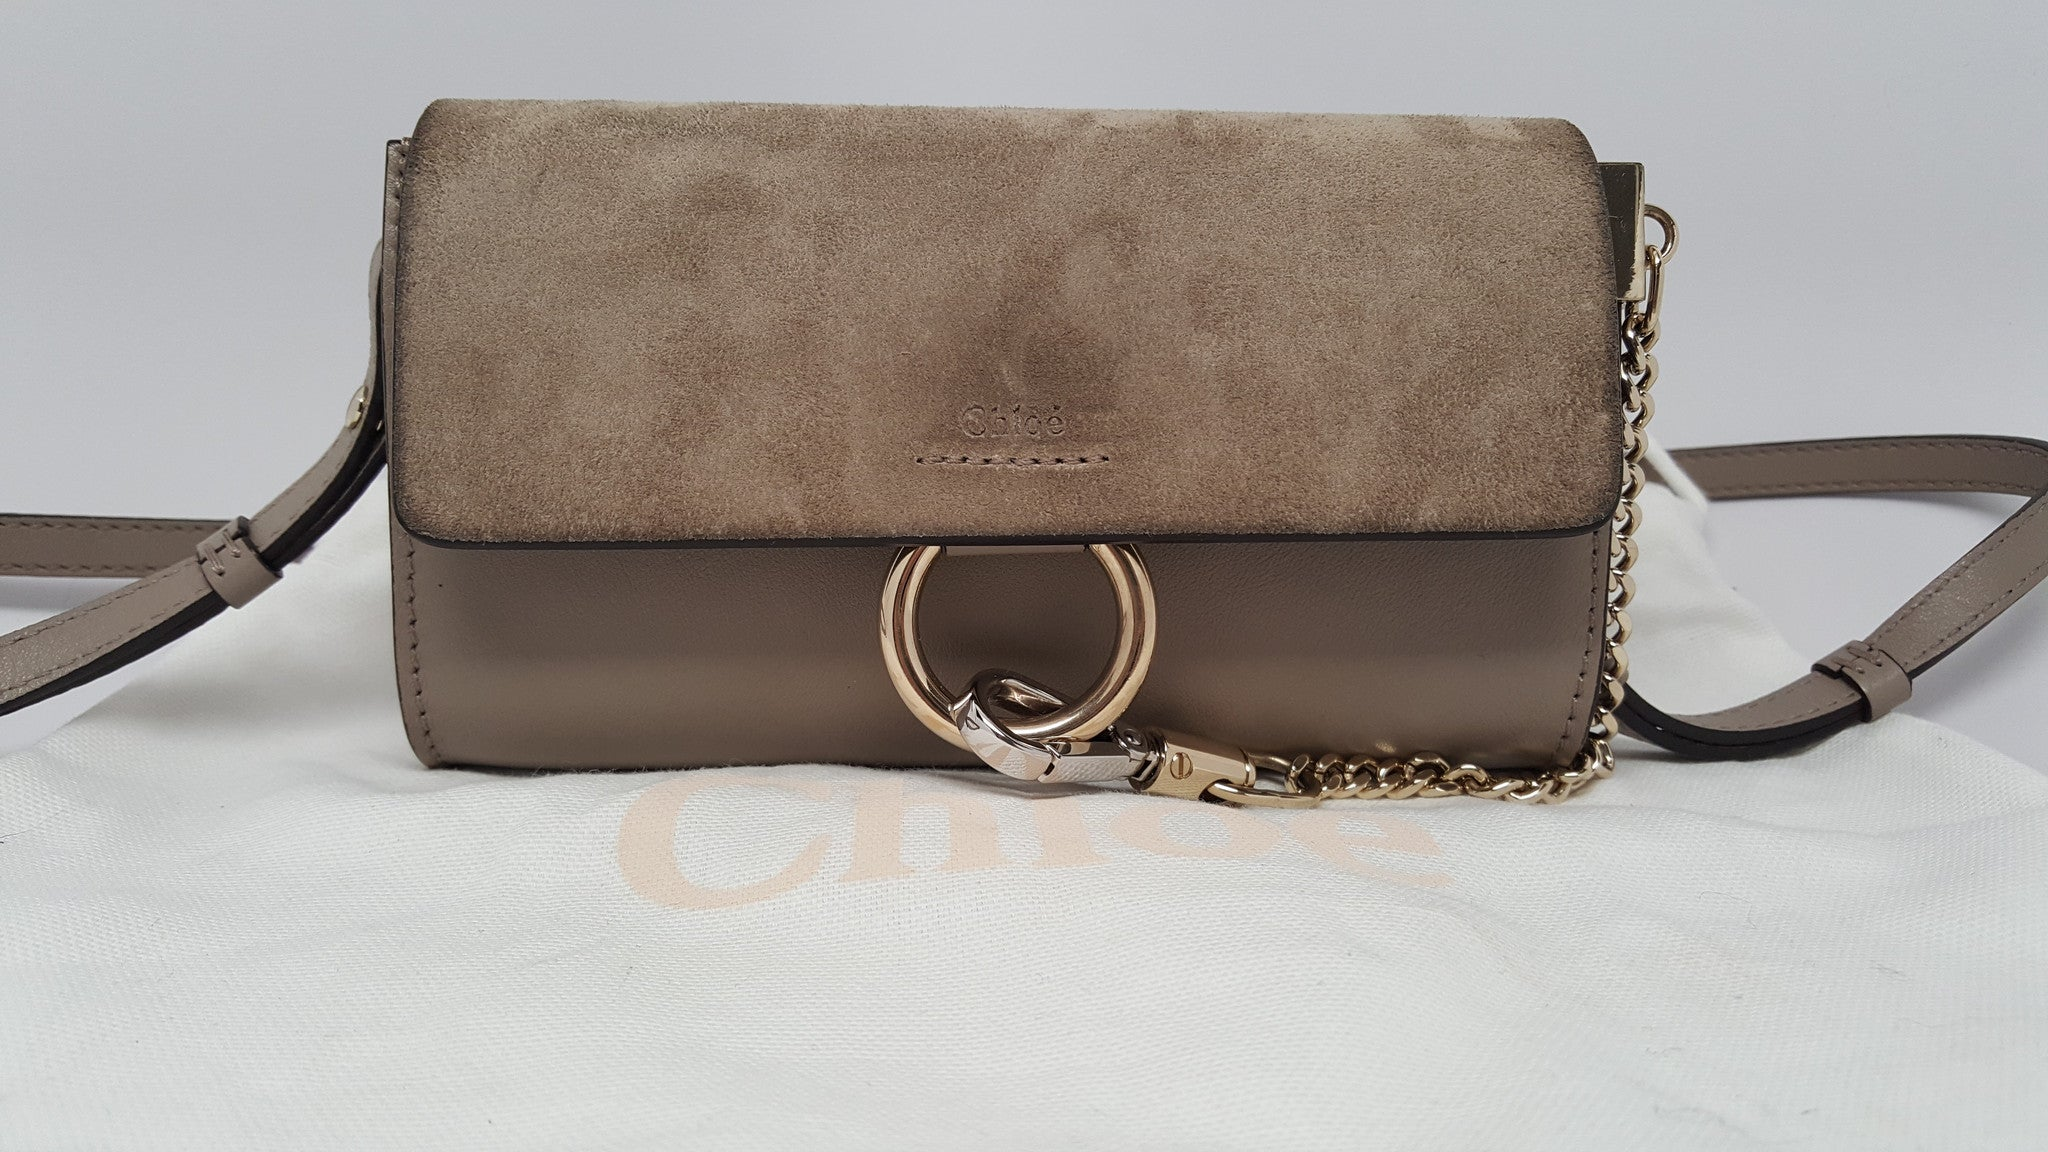 6482e1bc13e7 CHLOÉ FAYE MINI  MOTTY GRAY  LEATHER AND SUEDE SHOULDER BAG CLUTCH ...